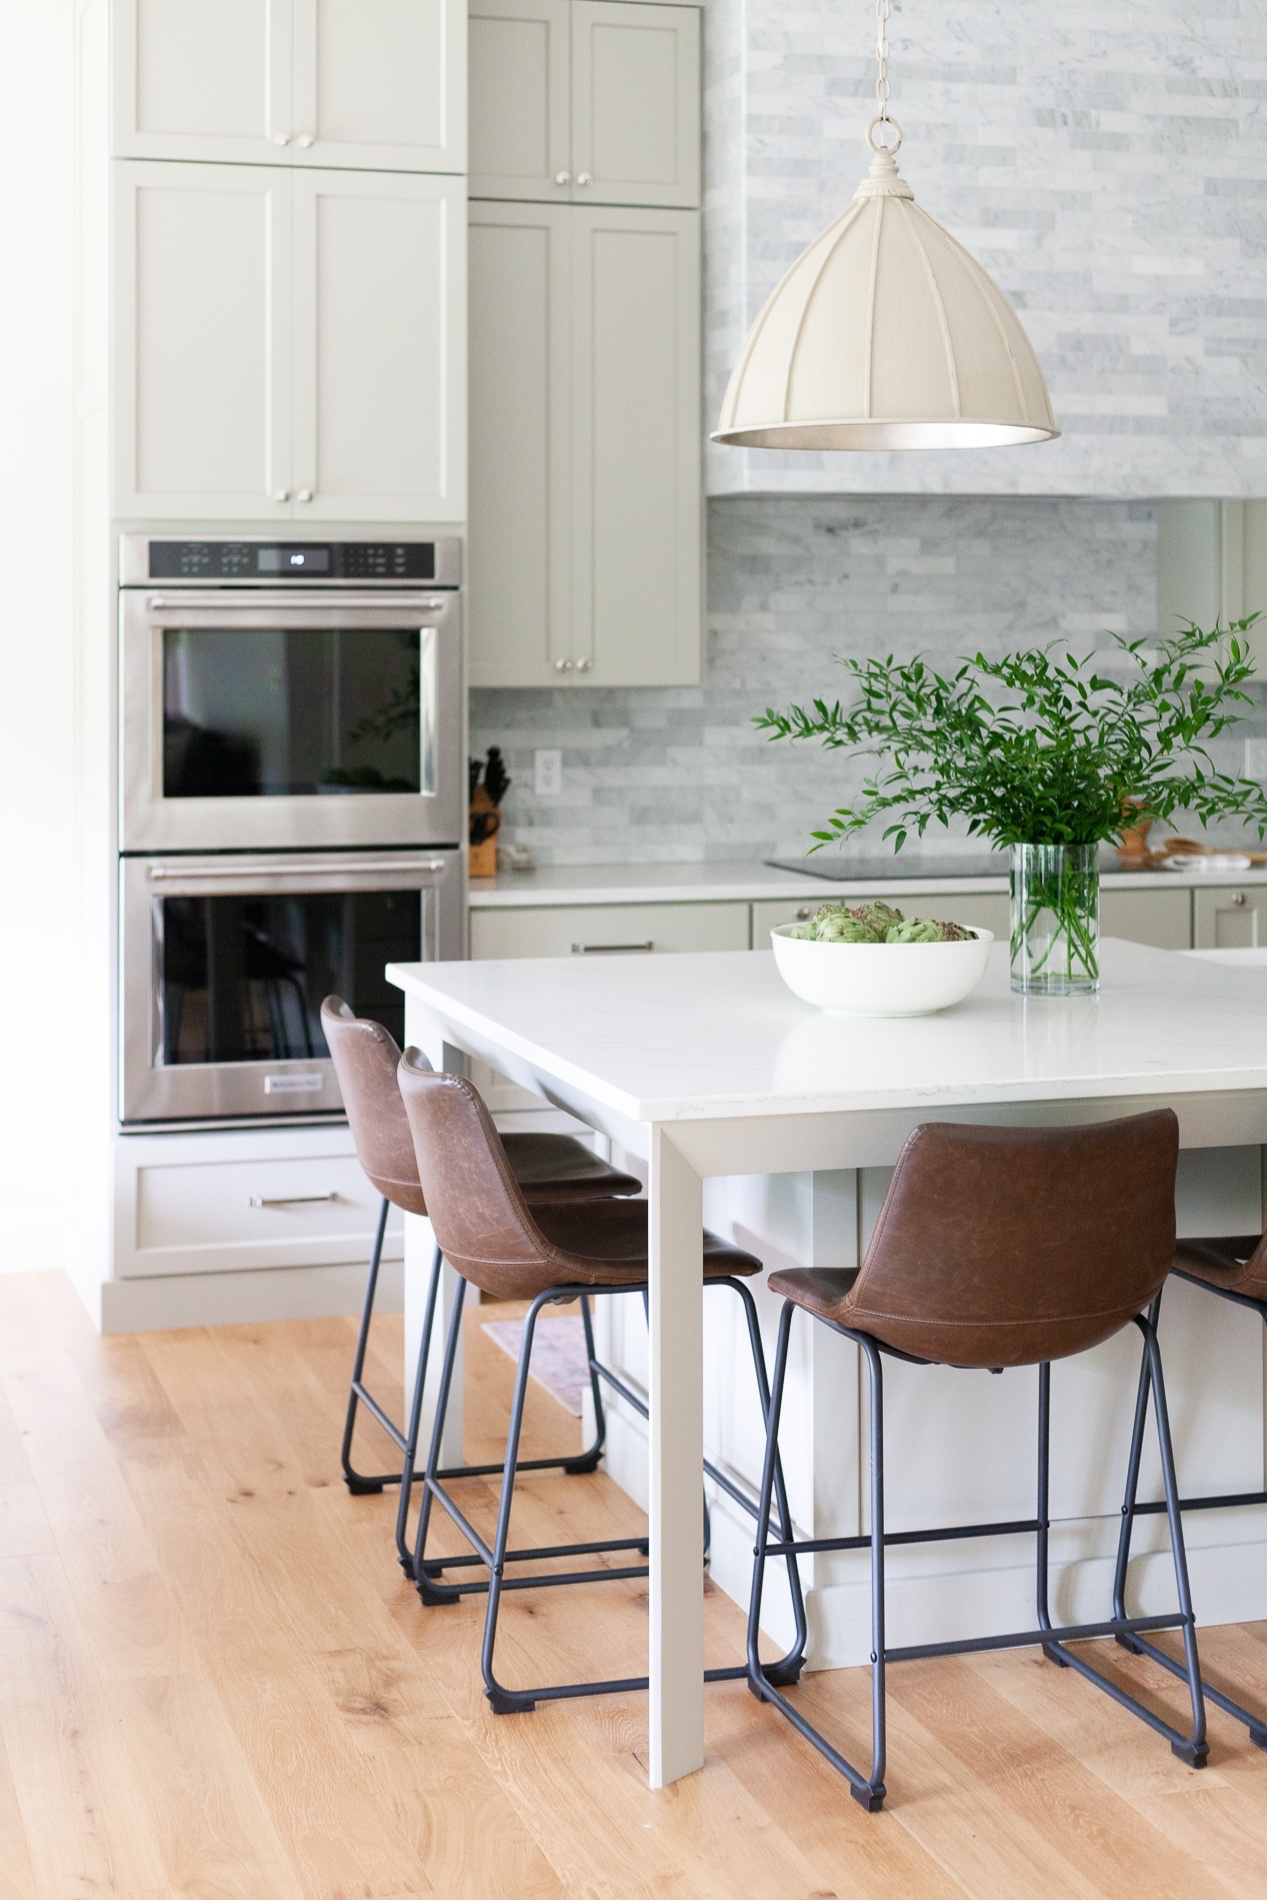 We love how the  Fenchurch Pendant  looks in this dreamy, neutral kitchen.